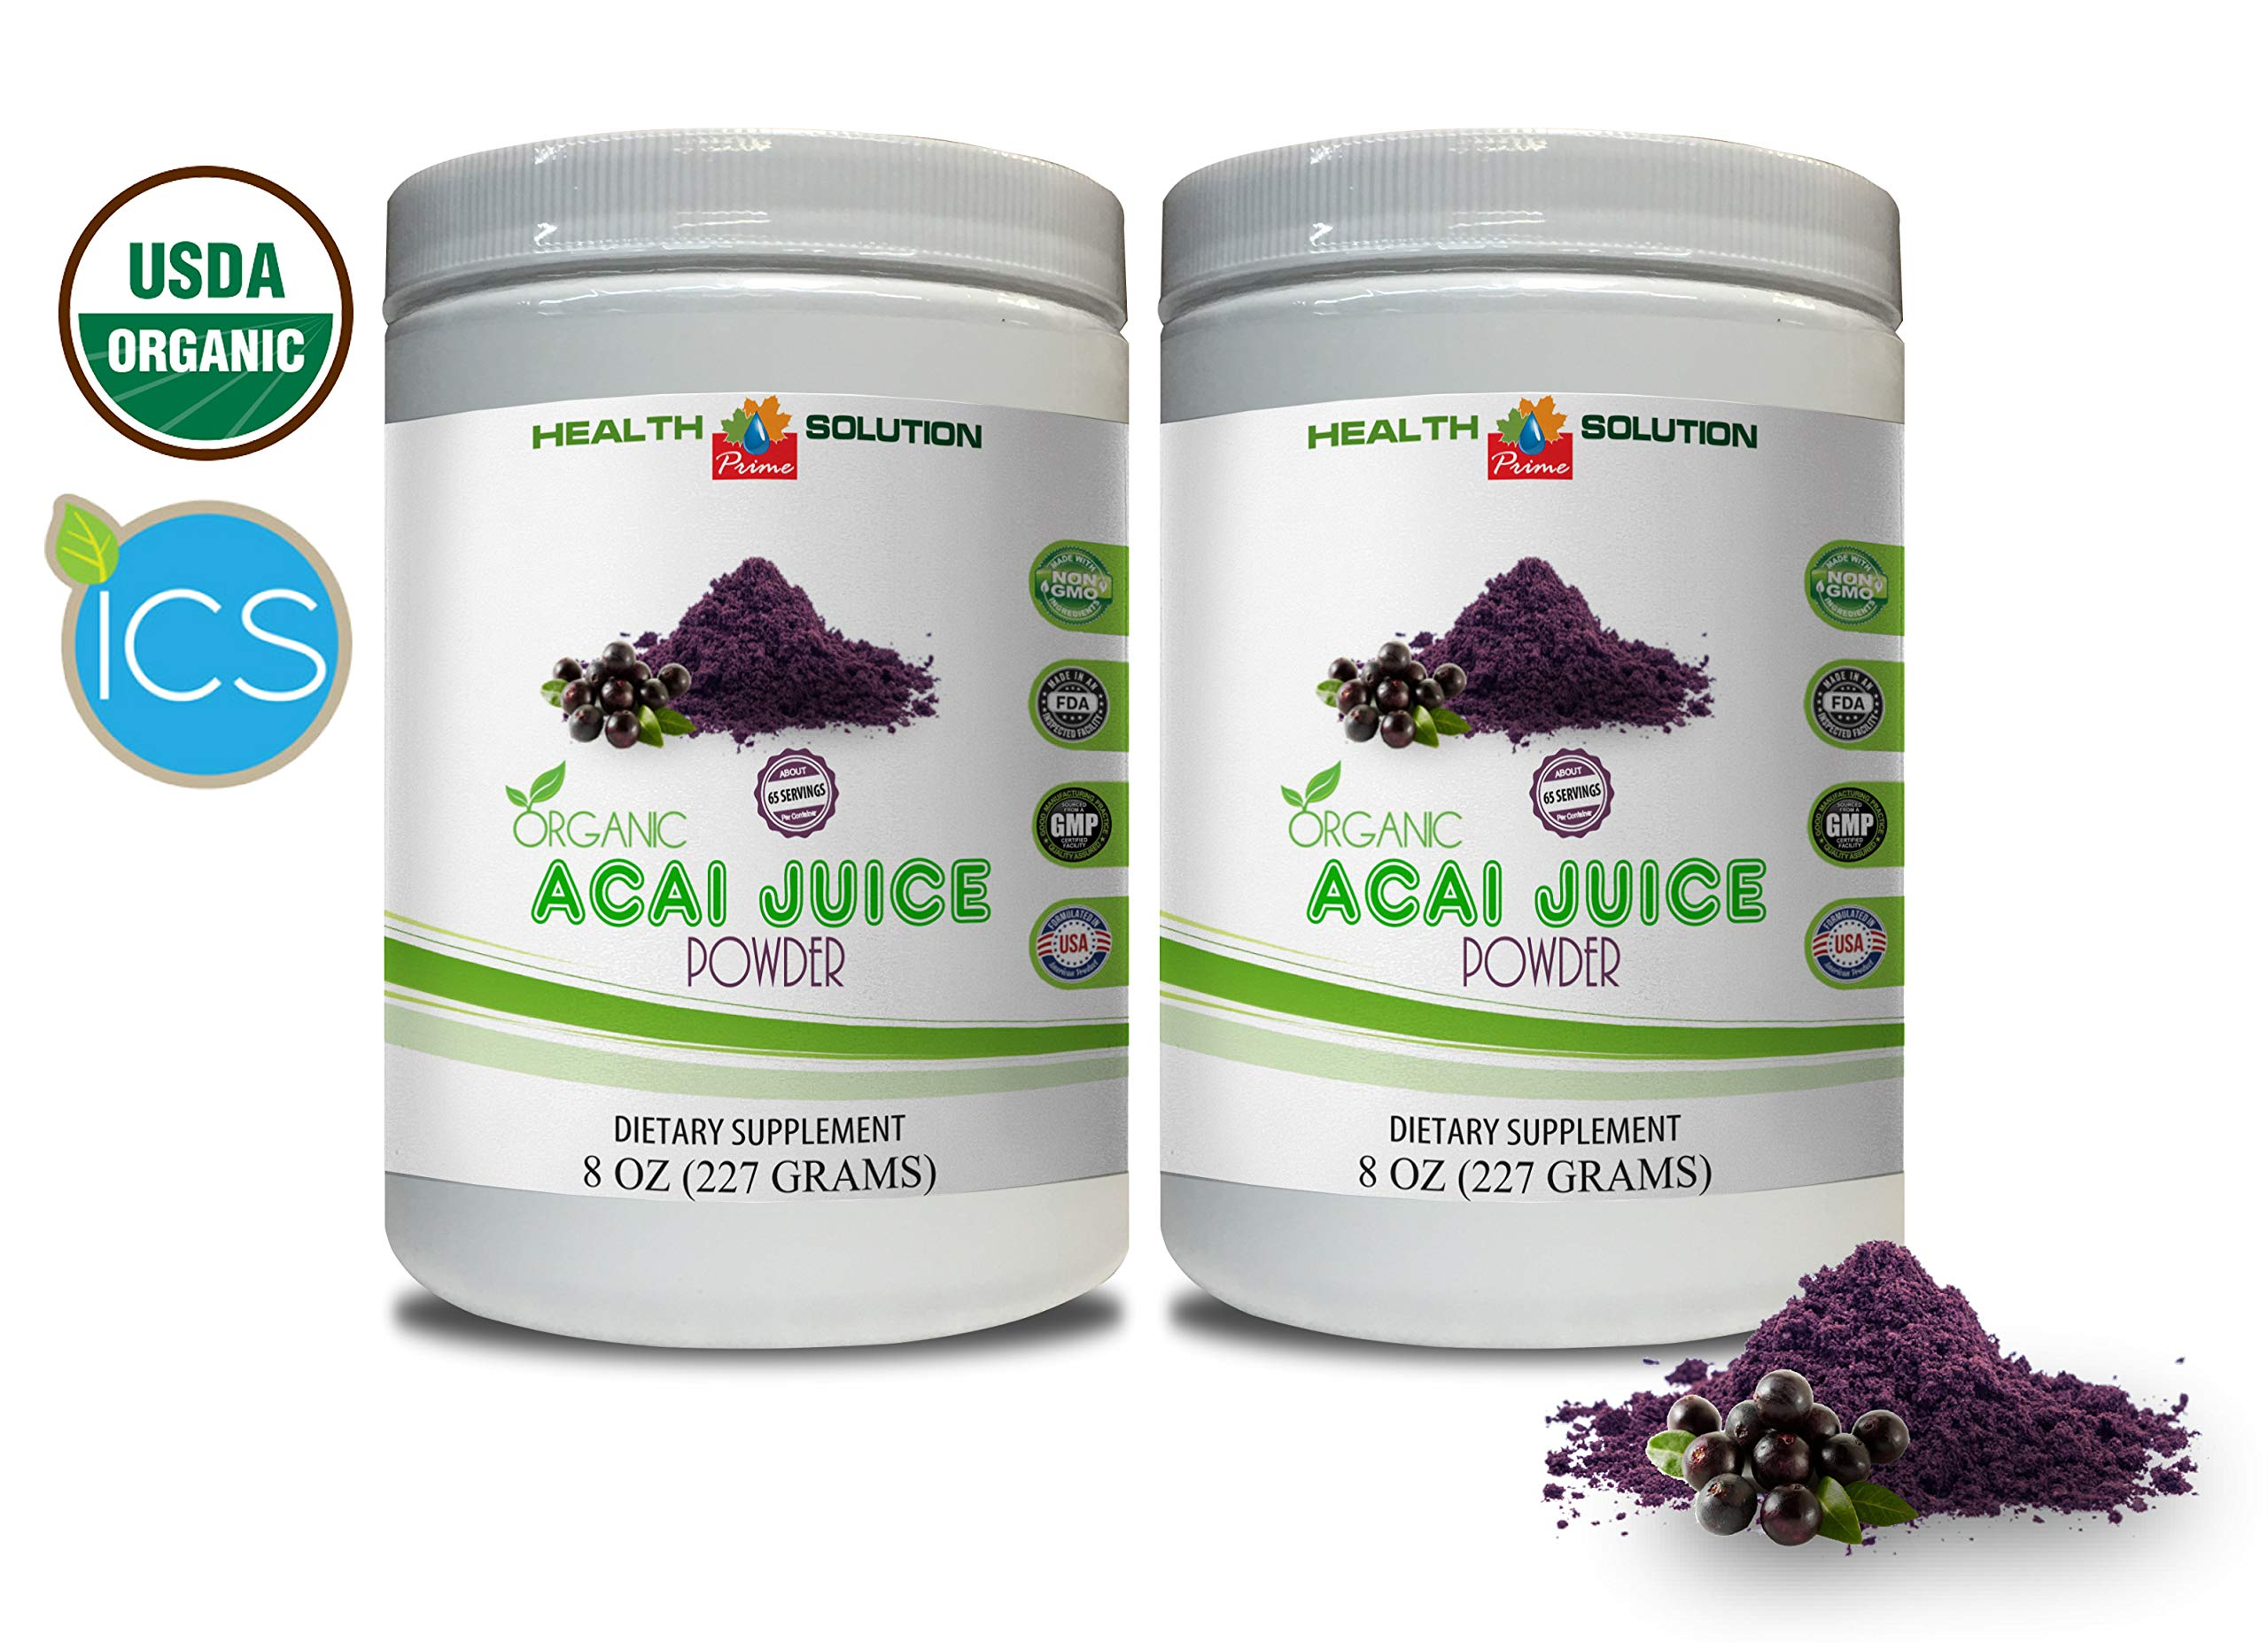 Immunity Booster Powder - Organic ACAI Juice Powder - acai Dietary Supplements Weight Loss - 2 Cans 16 OZ (130 Servings)